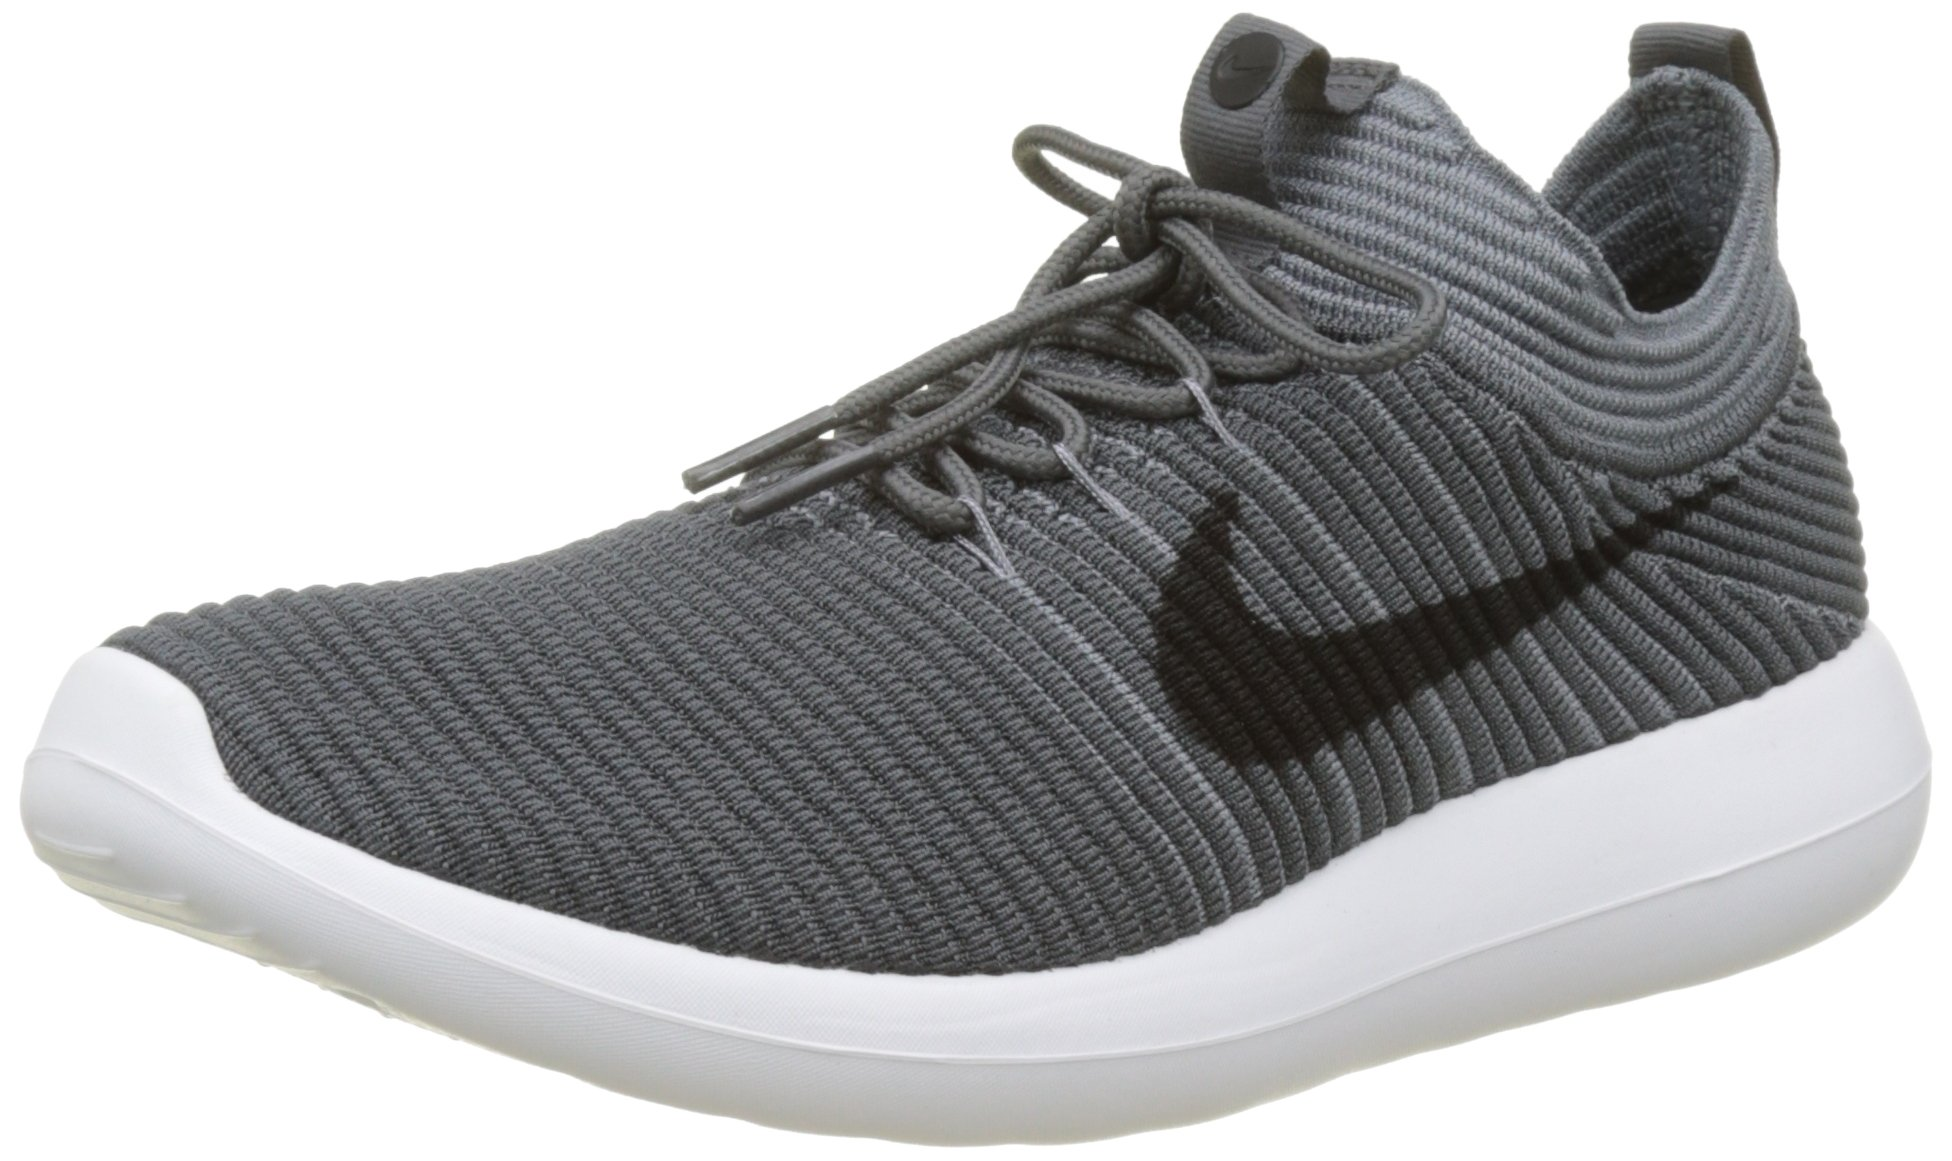 best service 4e6d4 588bd Nike Men's Roshe Two Flyknit V2 Dark Grey/Black-Cool Grey 918263-001 Shoe  9.5 M US Men